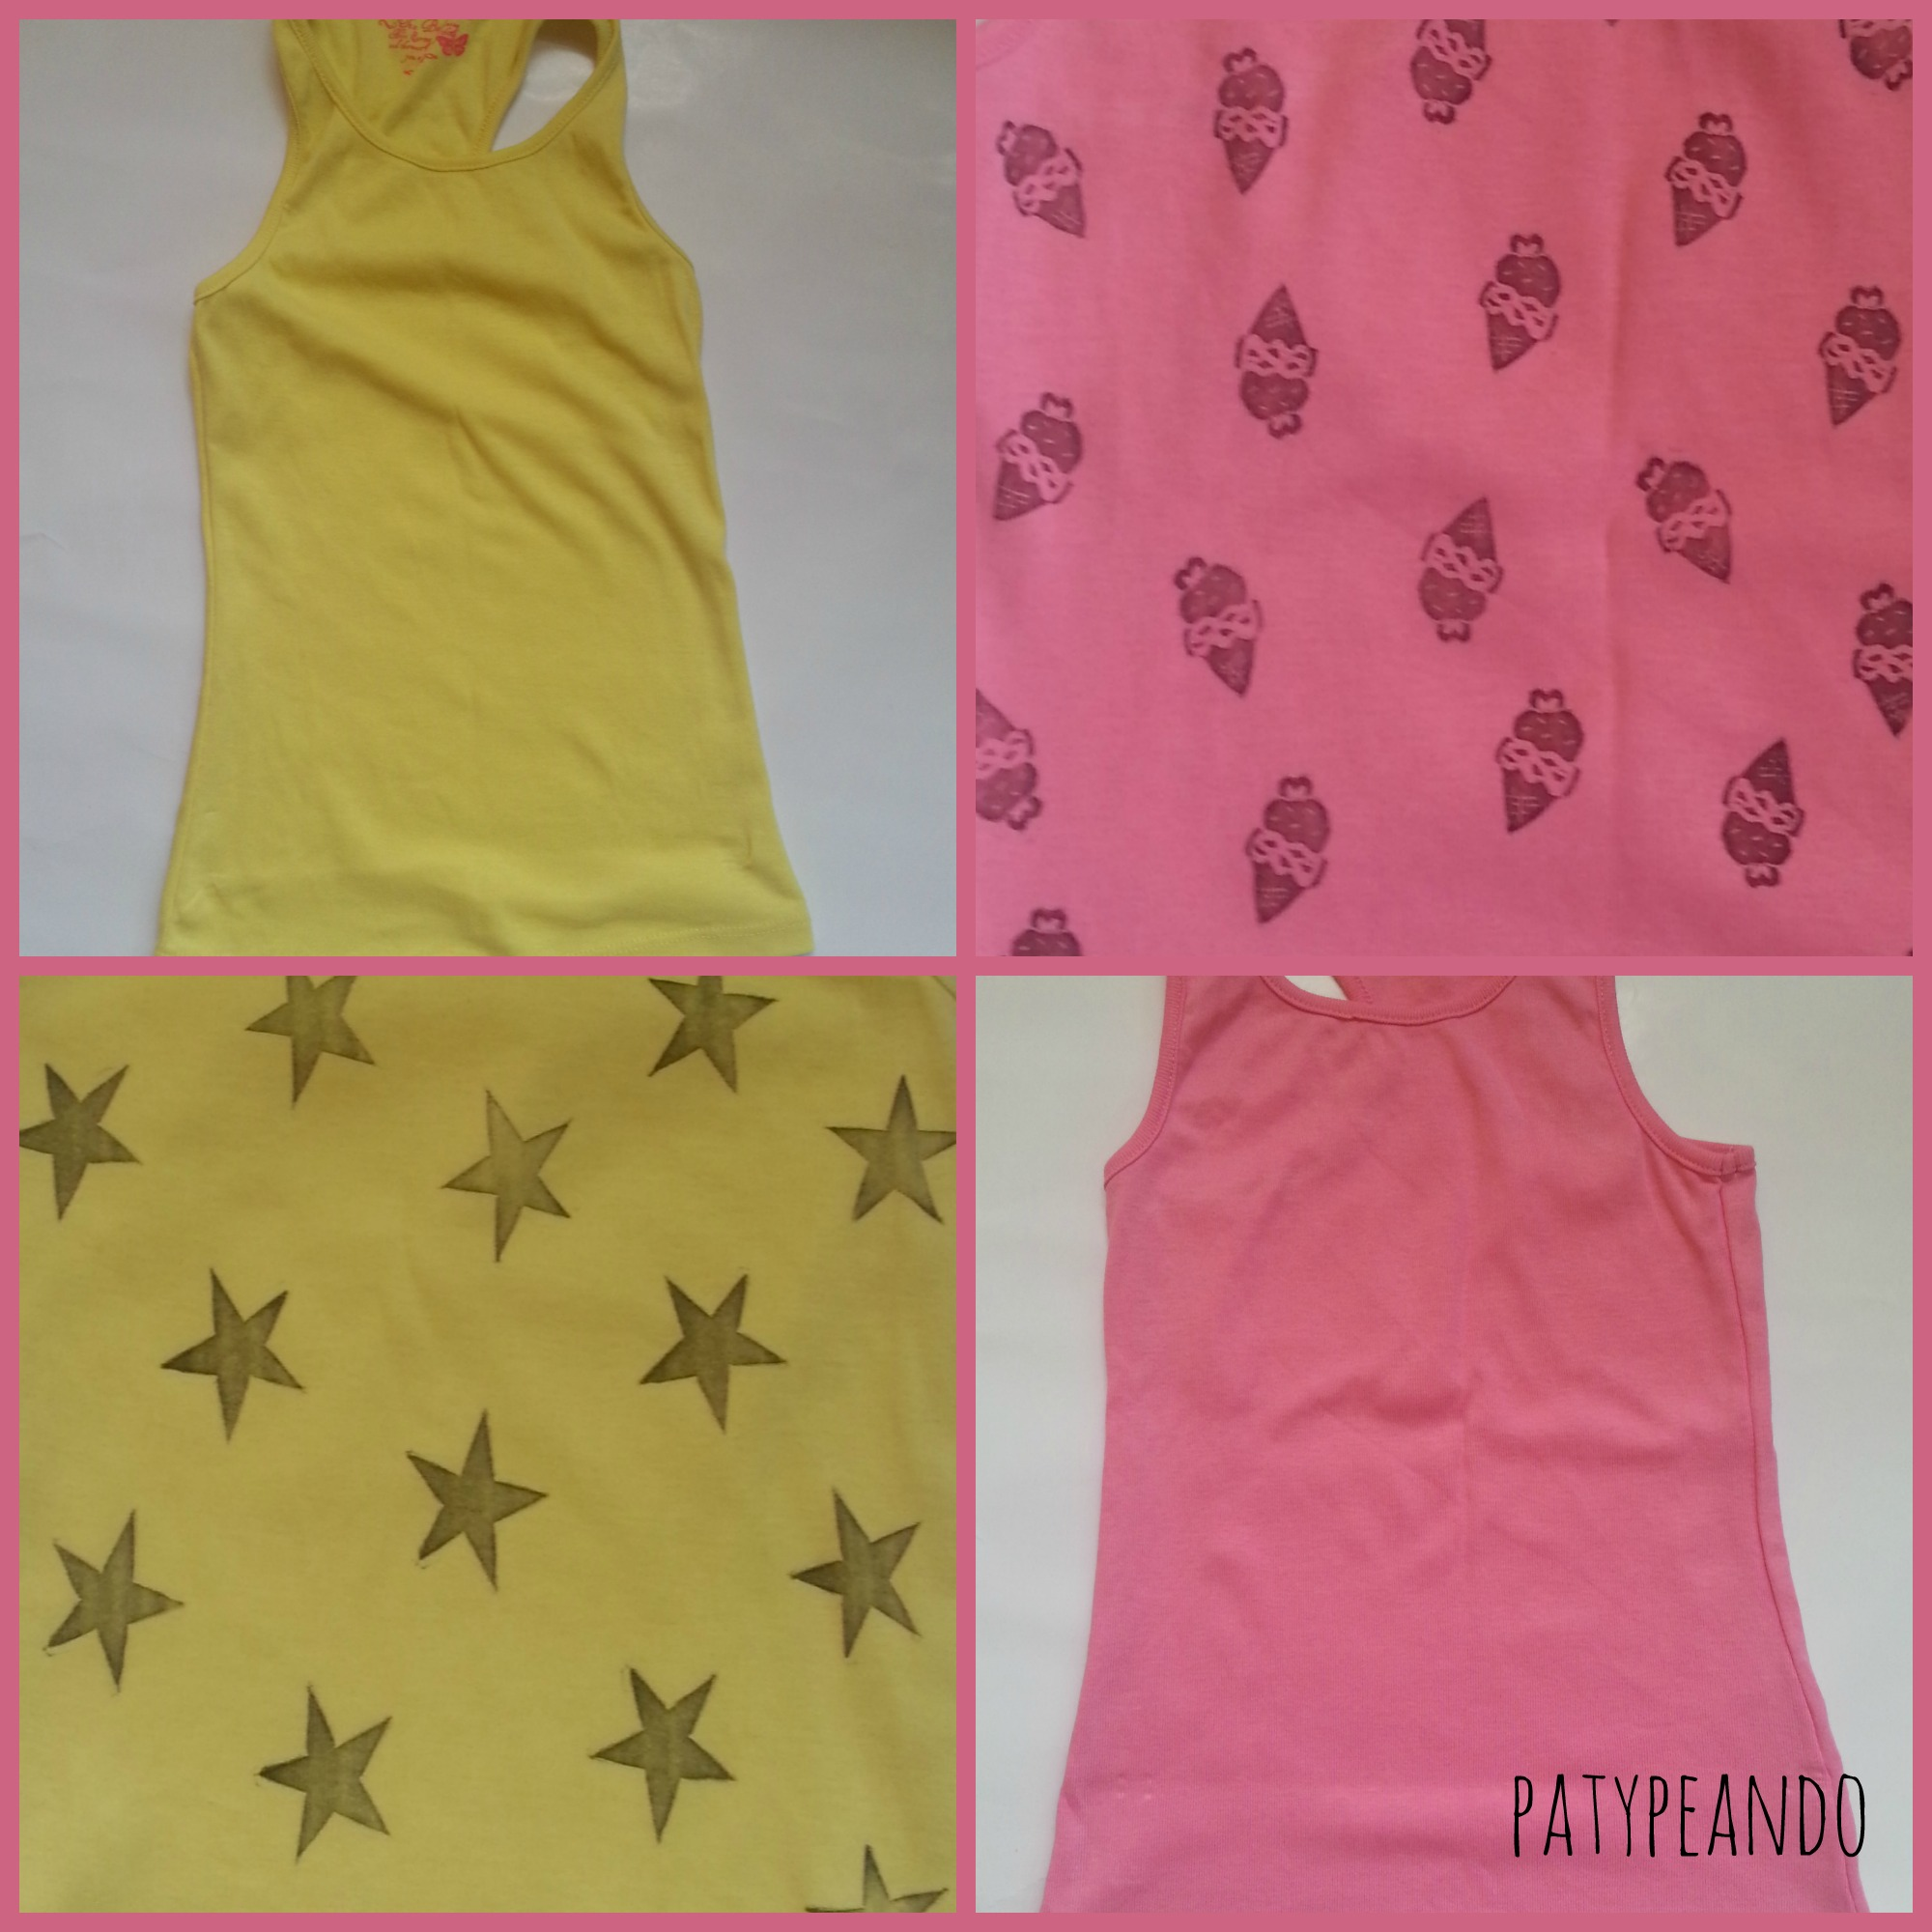 estanpando camisetas